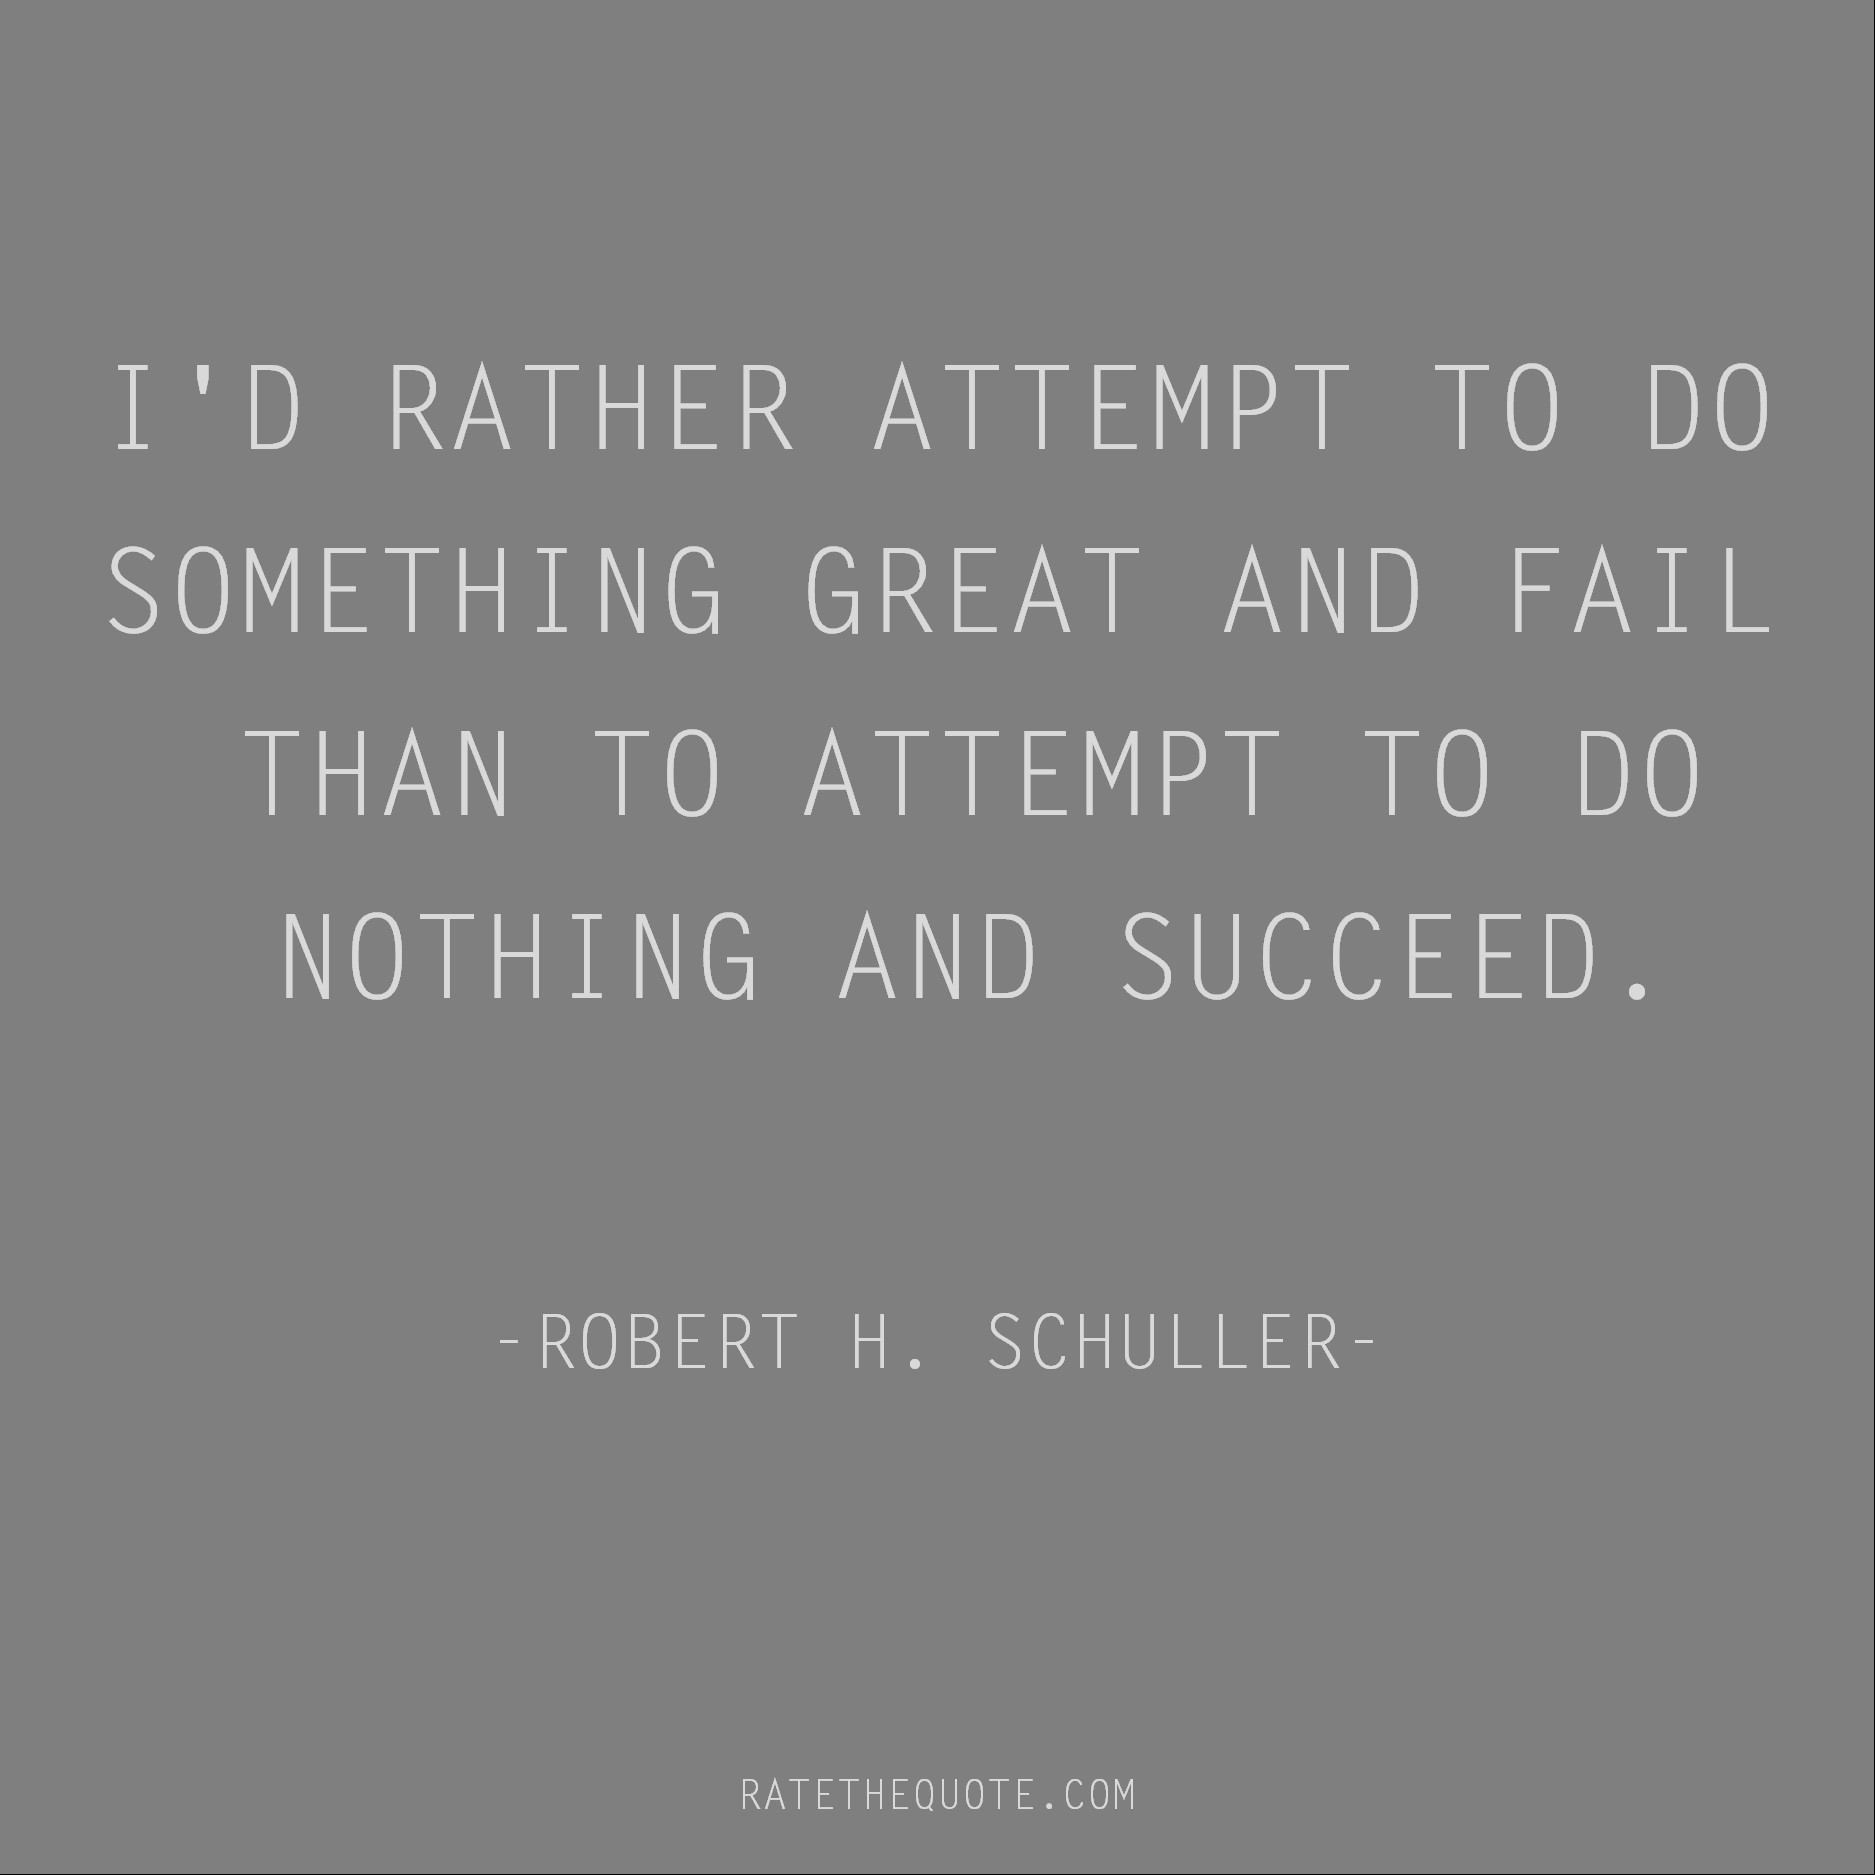 Motivational Quotes I'd rather attempt to do something great and fail than to attempt to do nothing and succeed. Robert H. Schuller